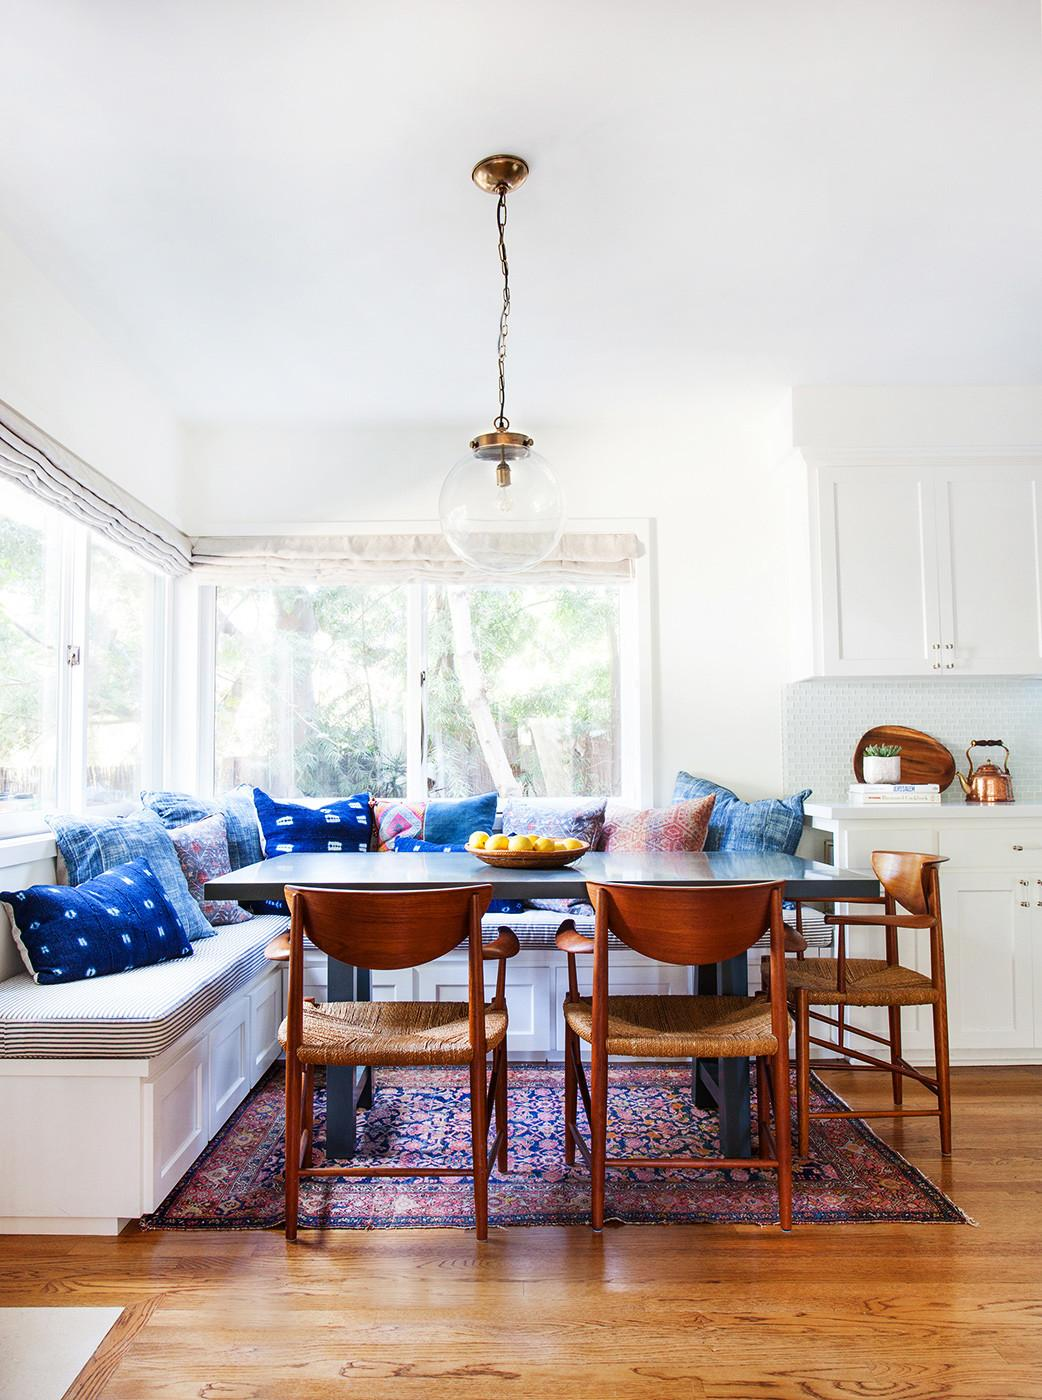 New Family Bohemian Eclectic California Home Glitter